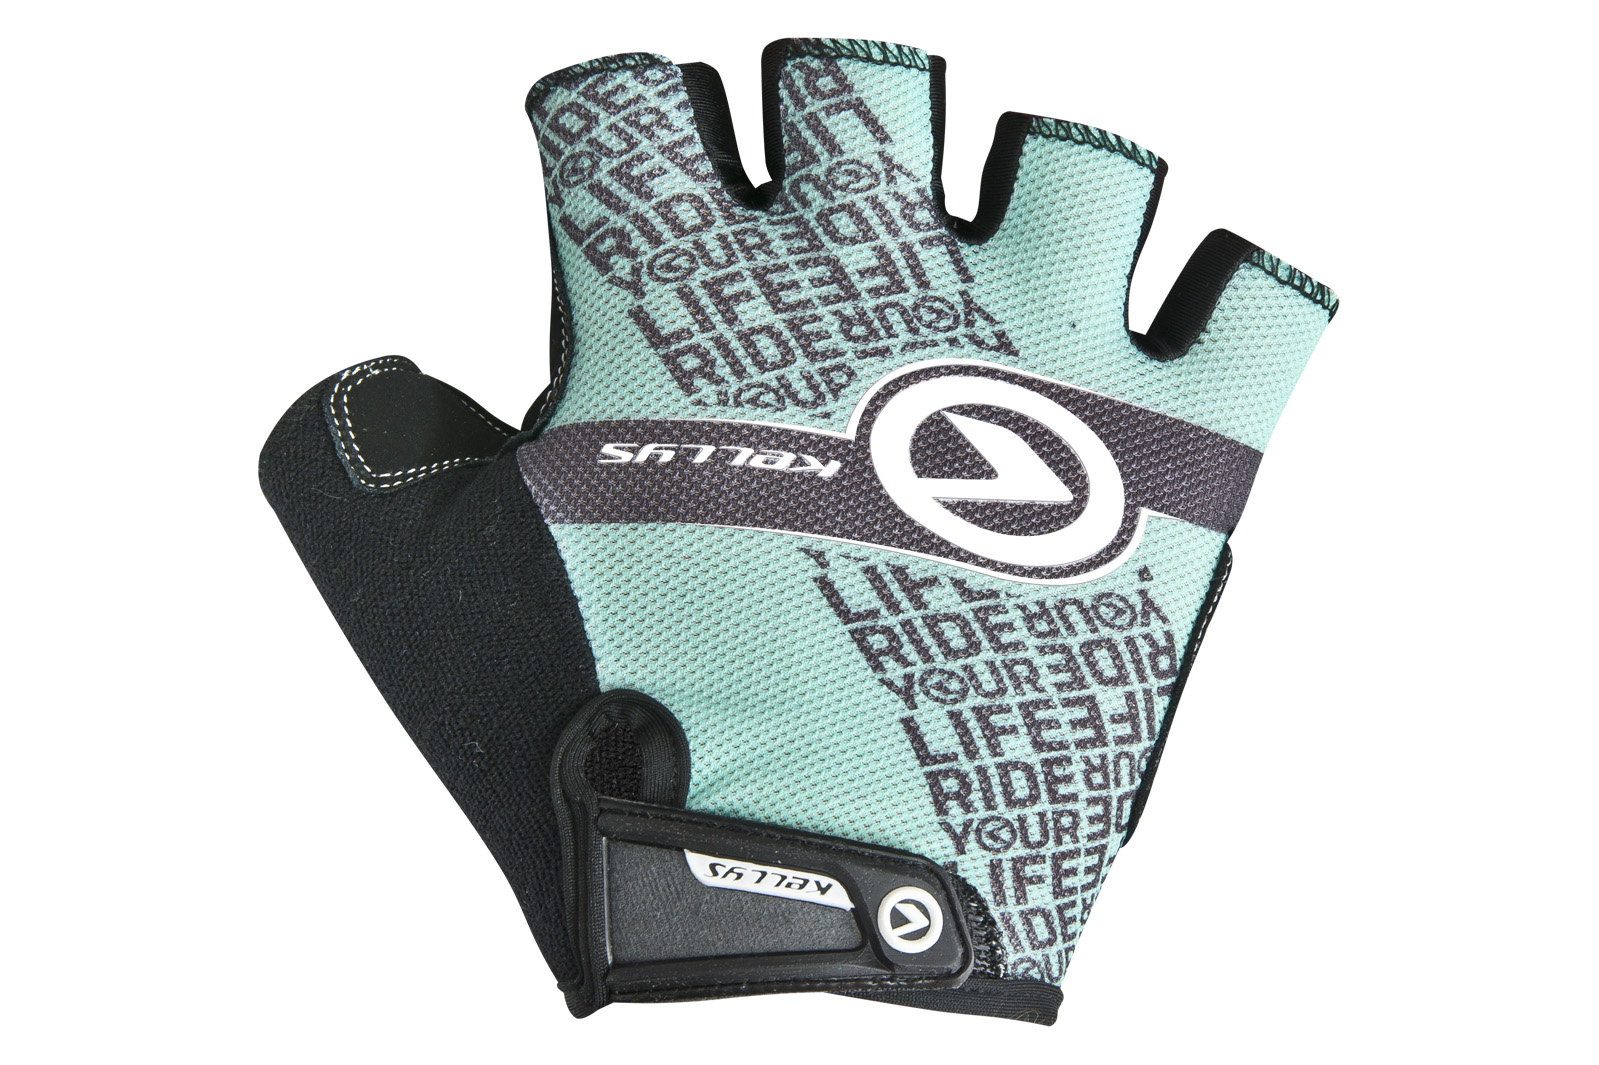 Handschuhe COMFORT NEW turquoise XS - Fahrradhaus Haske